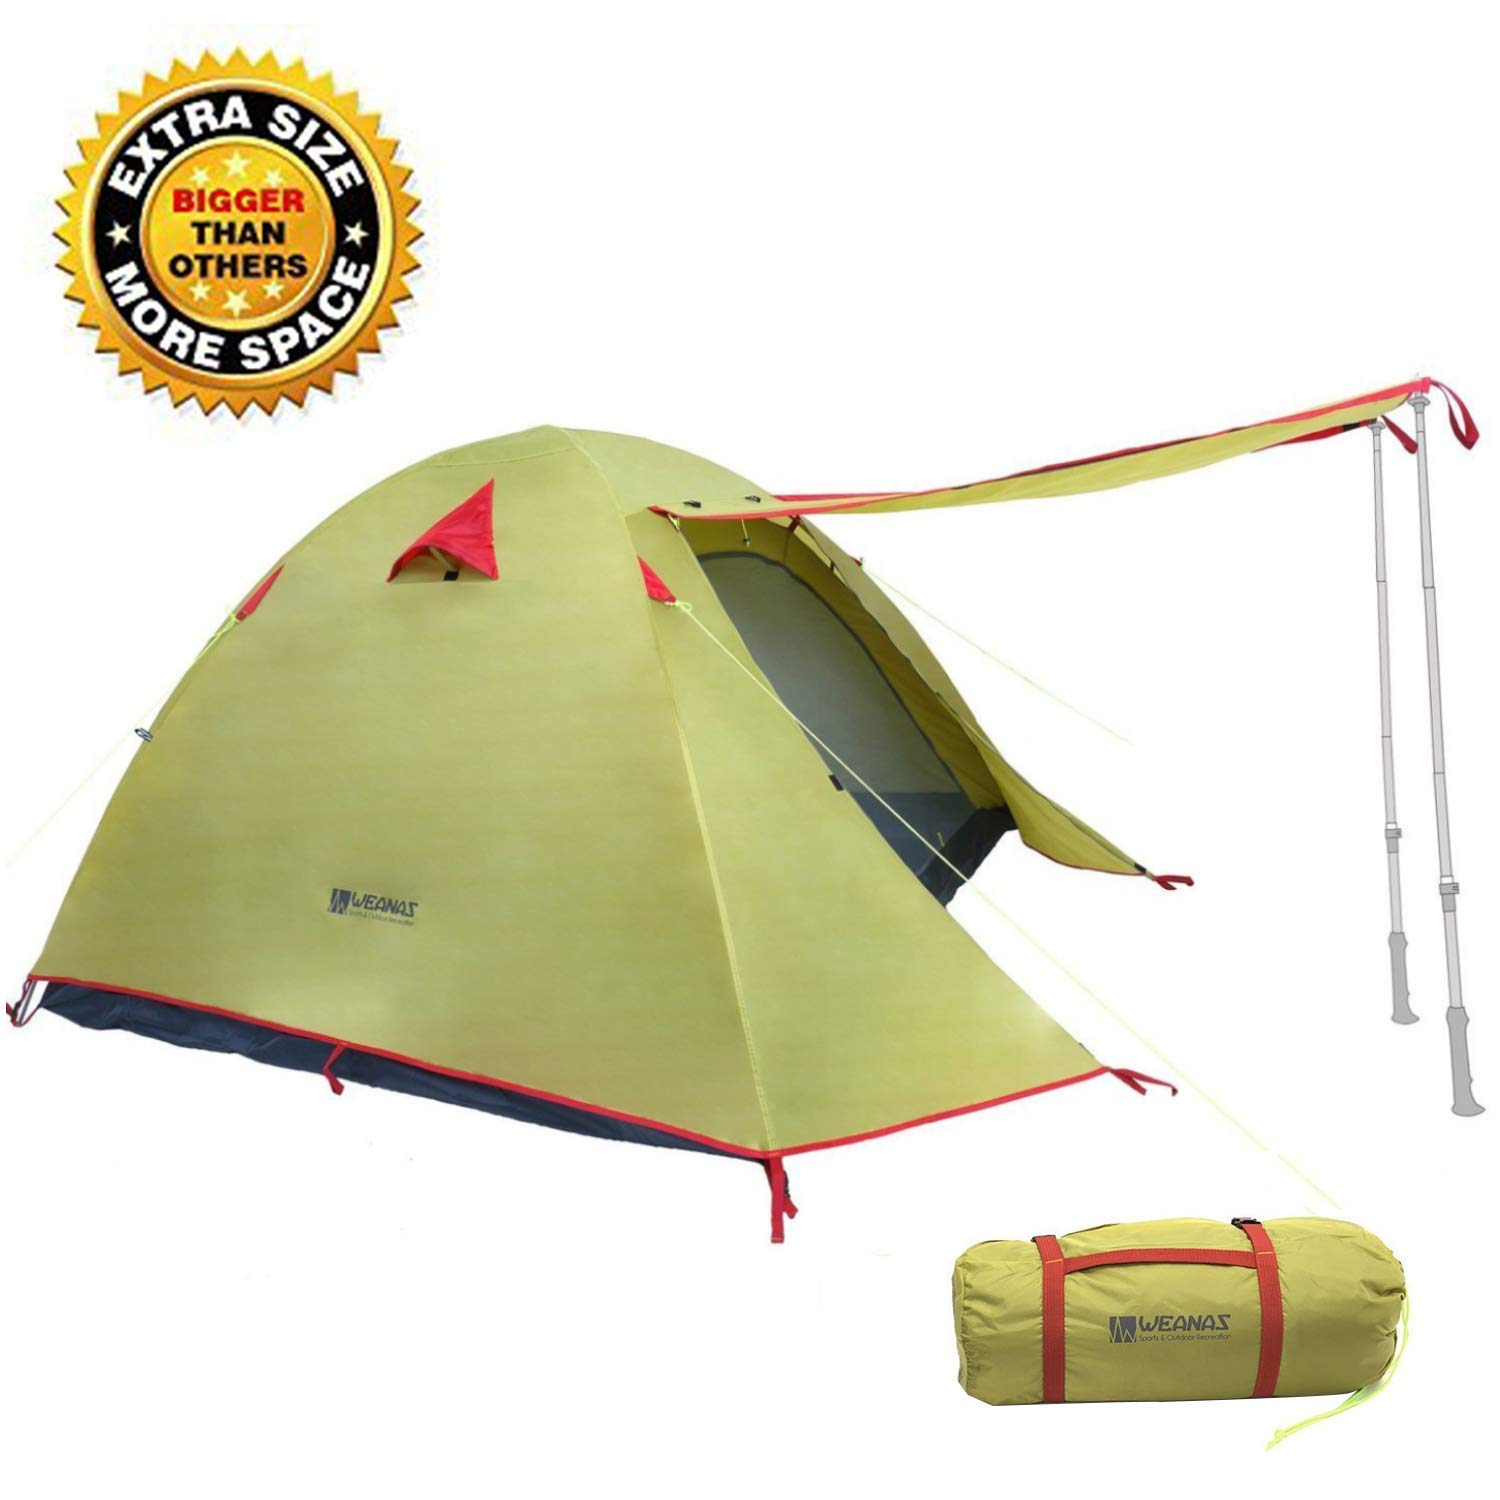 Weanas Professional Backpacking Hunting Tent Outdoor 2 2-3 3 4 Person 3 Season Weatherproof Double Layer Large Space Aluminum Rod for Outdoor Family Camping Hunting Hiking Adventure Travel (Green, 2-3 Person) [並行輸入品] B079WQT25C, セキチョウ:e5a0e018 --- ijpba.info